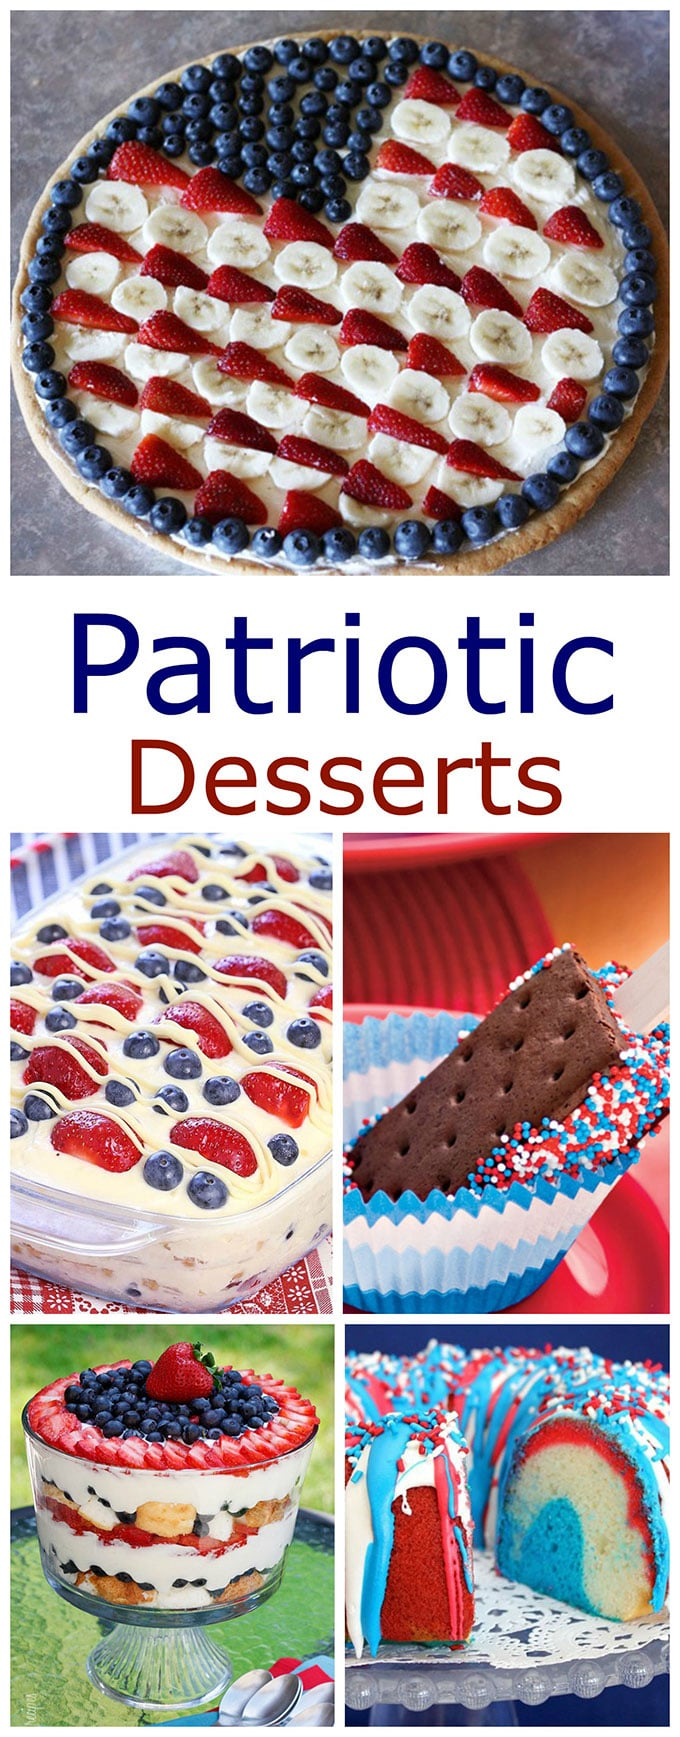 A collection of fun, festive and EASY patriotic desserts for your summer get togethers, picnics and parties!